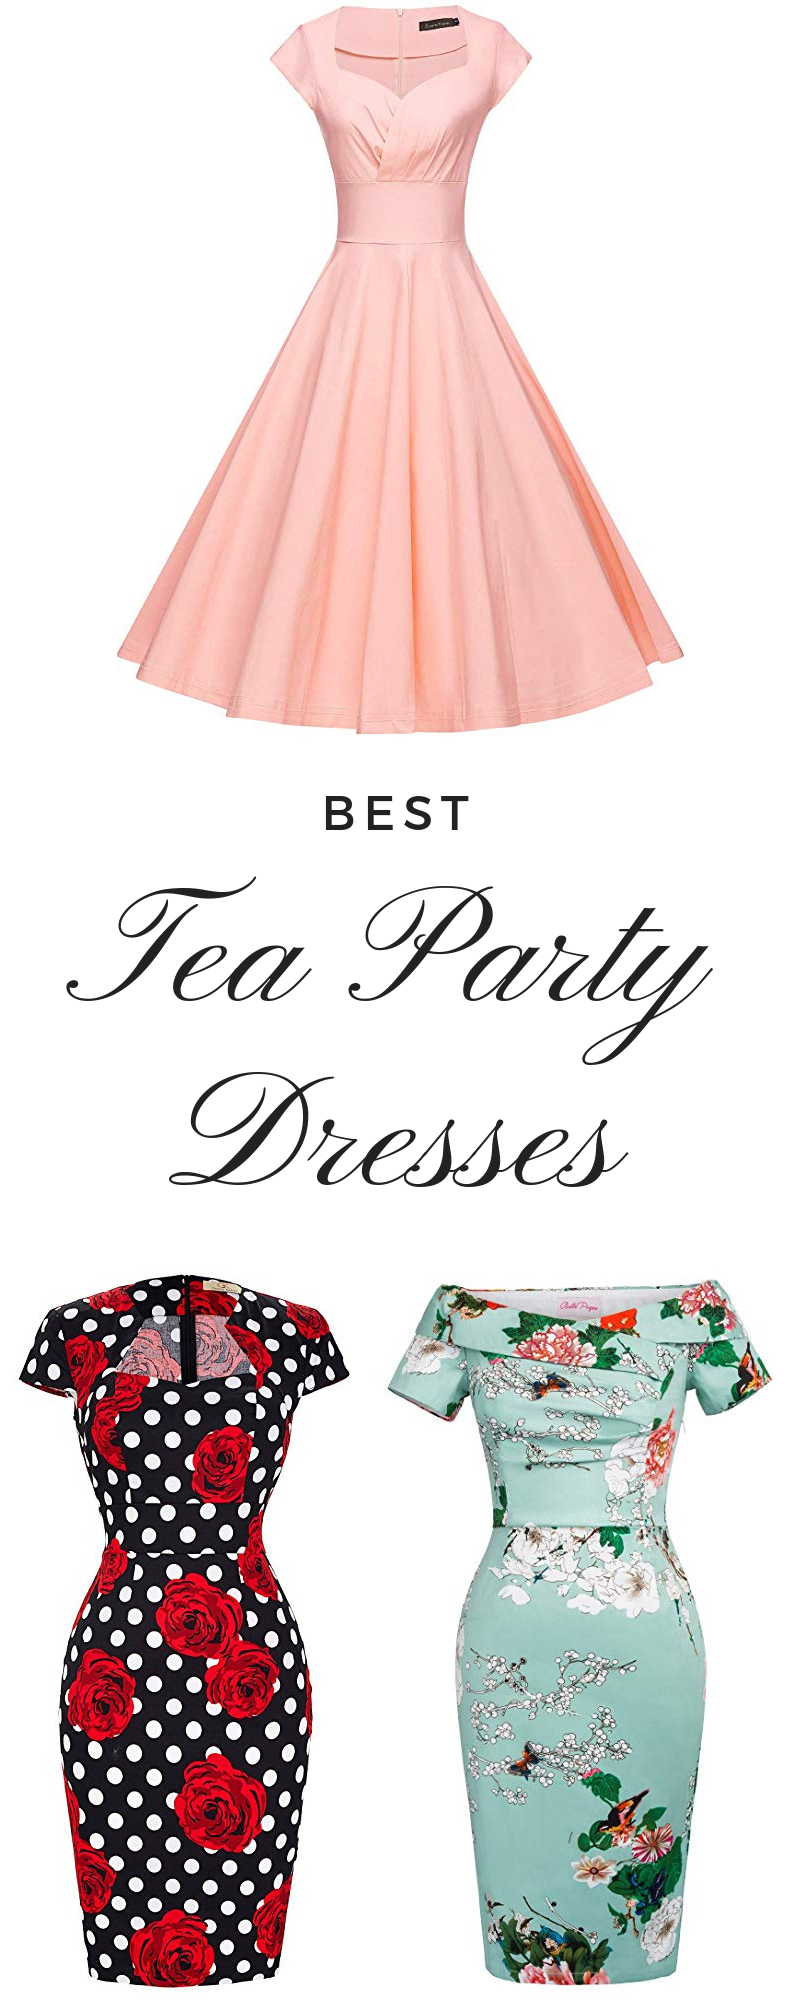 Best High Tea Party Dresses Dresses For High Tea Parties And Weddings Tea Party Dress High Tea Dress Tea Party Outfits [ 2000 x 800 Pixel ]